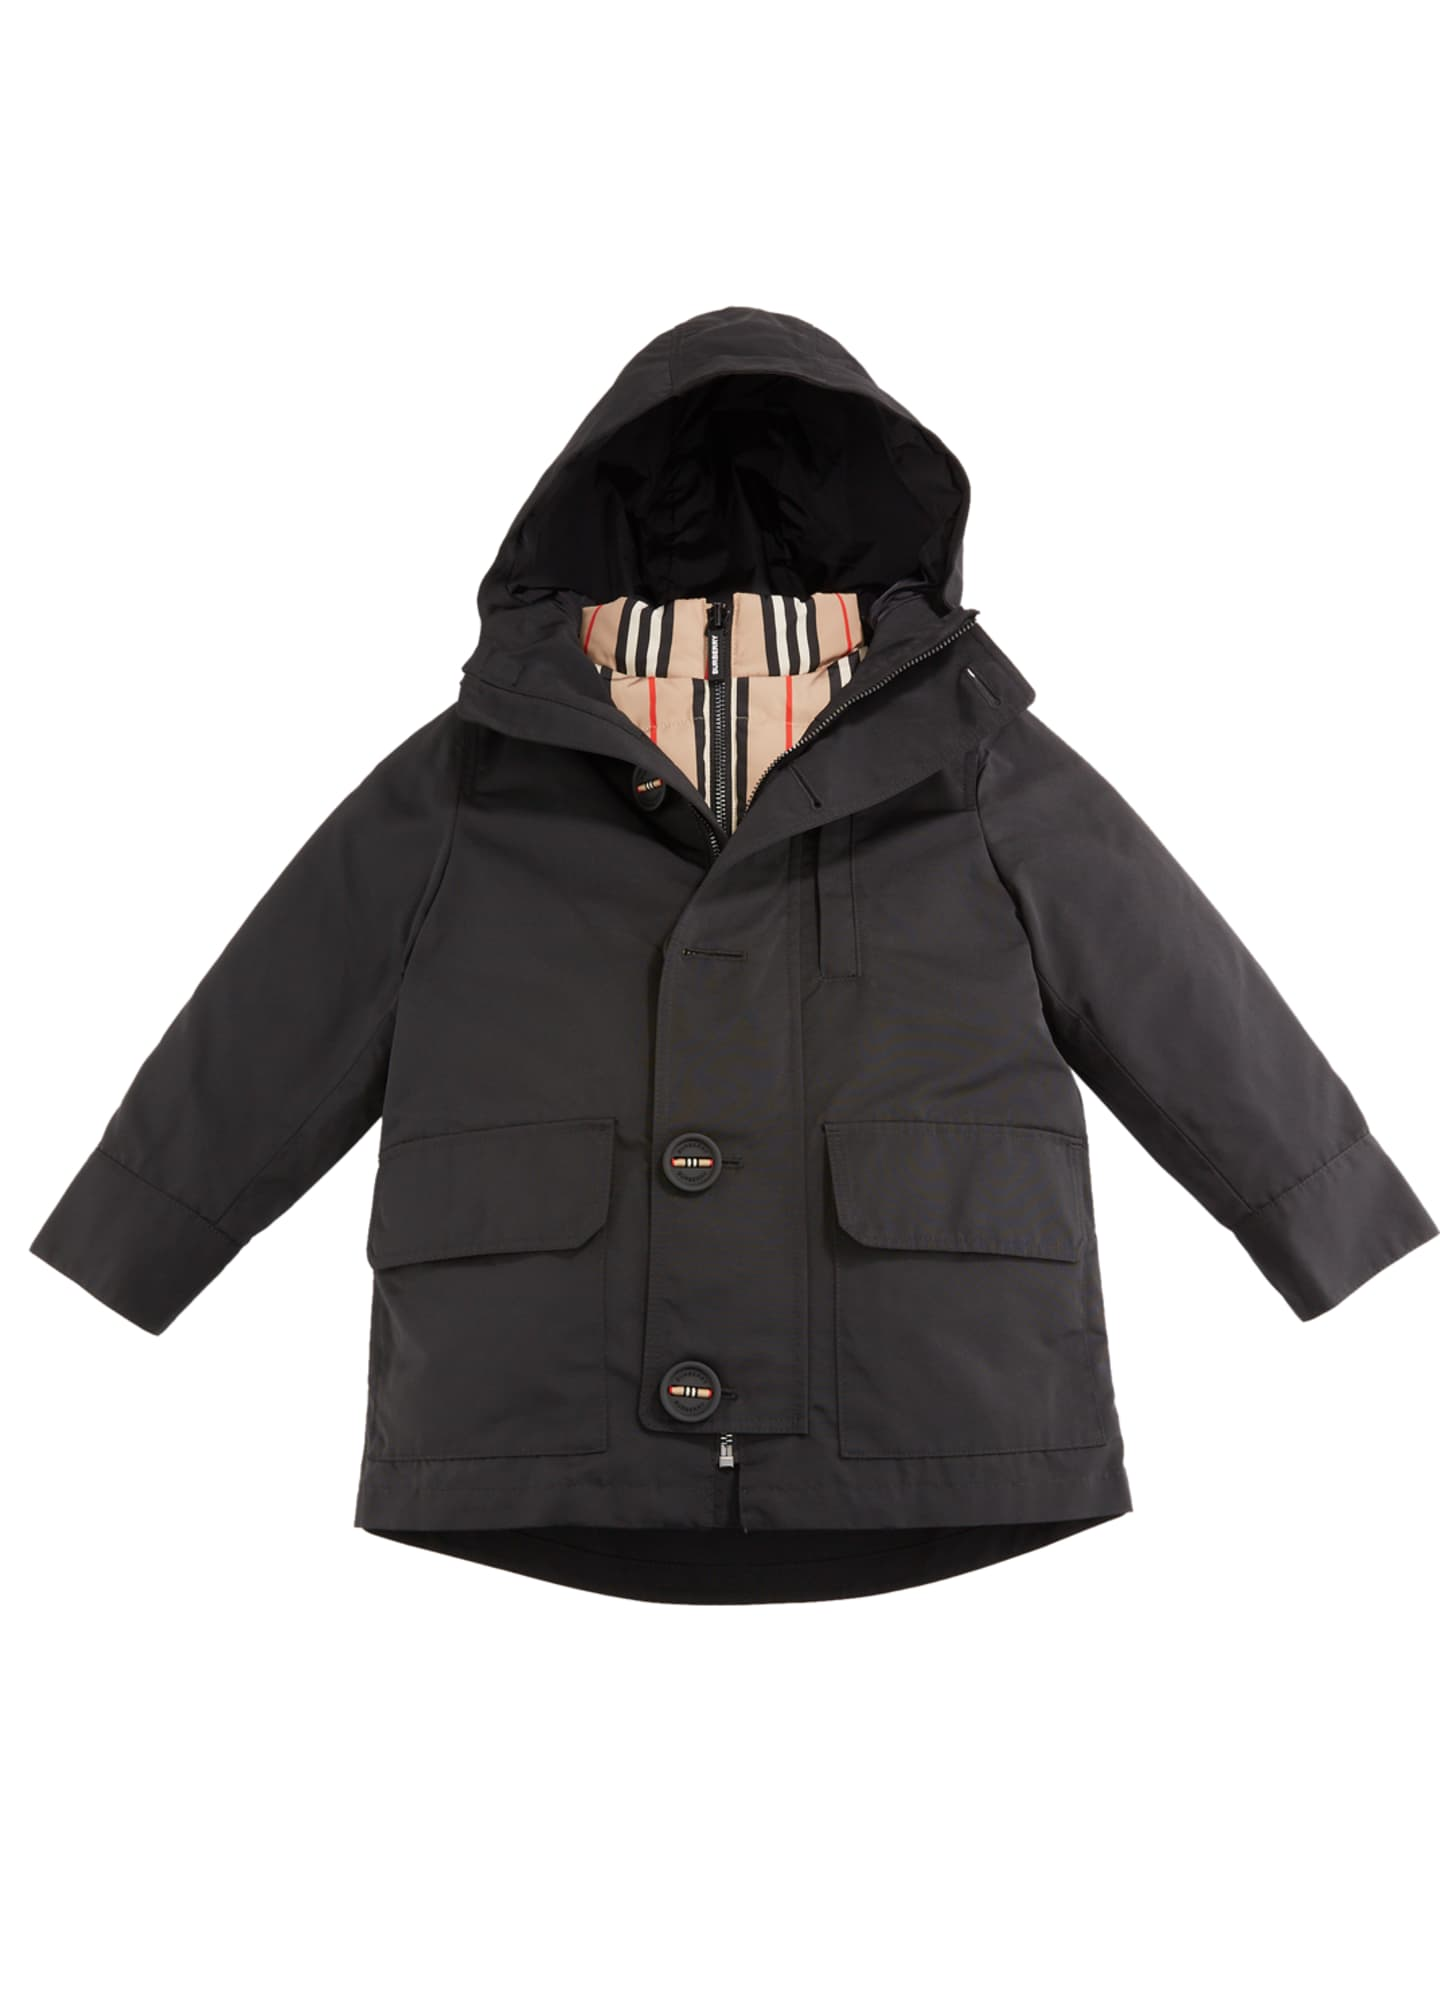 Burberry Boy's Rowan 3-in-1 Parka w/ Removable Icon